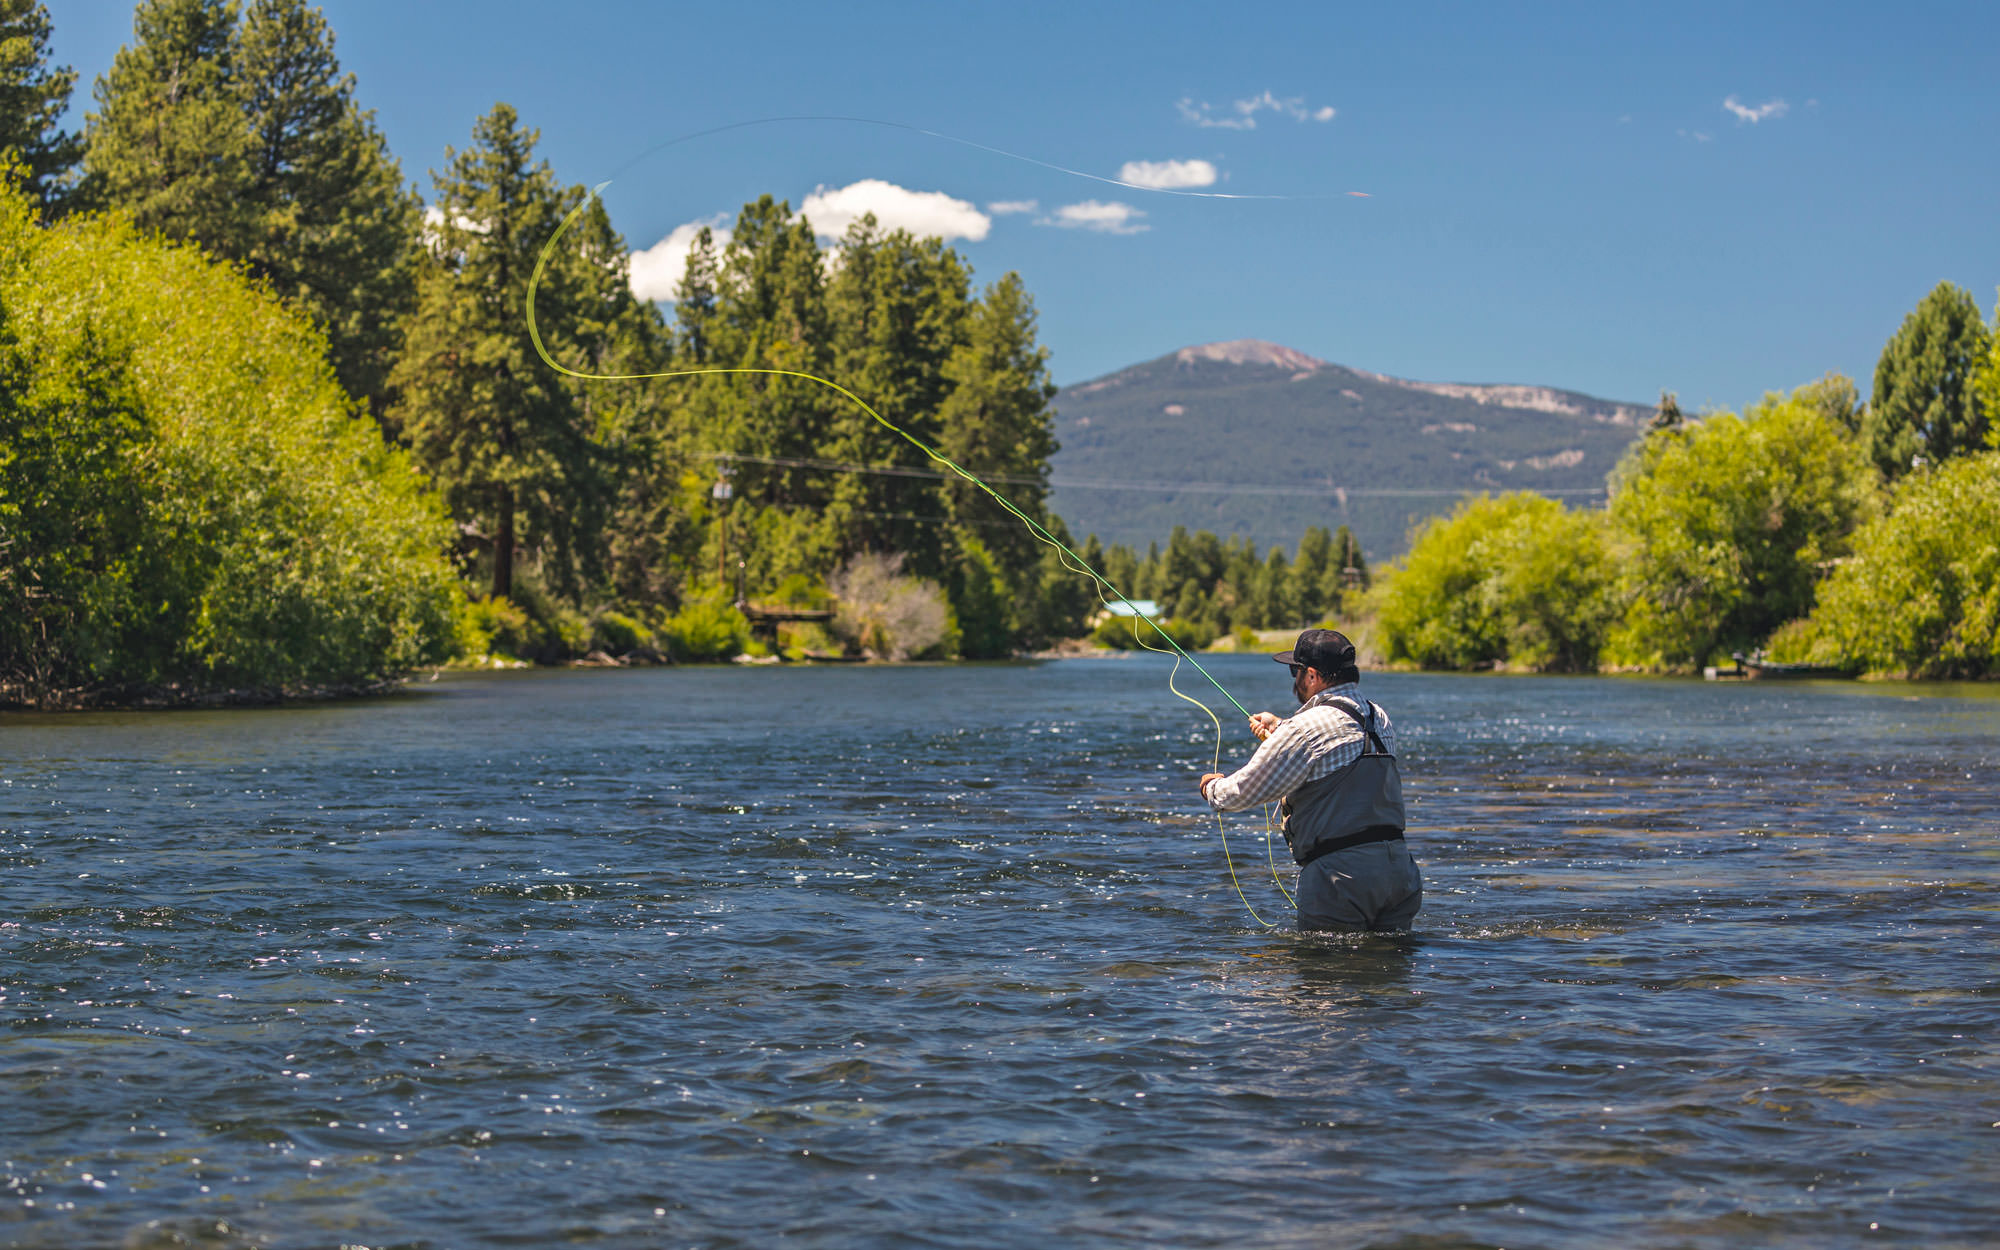 A fly fisher casts a line into the blue waters of the Lower Williamson River.